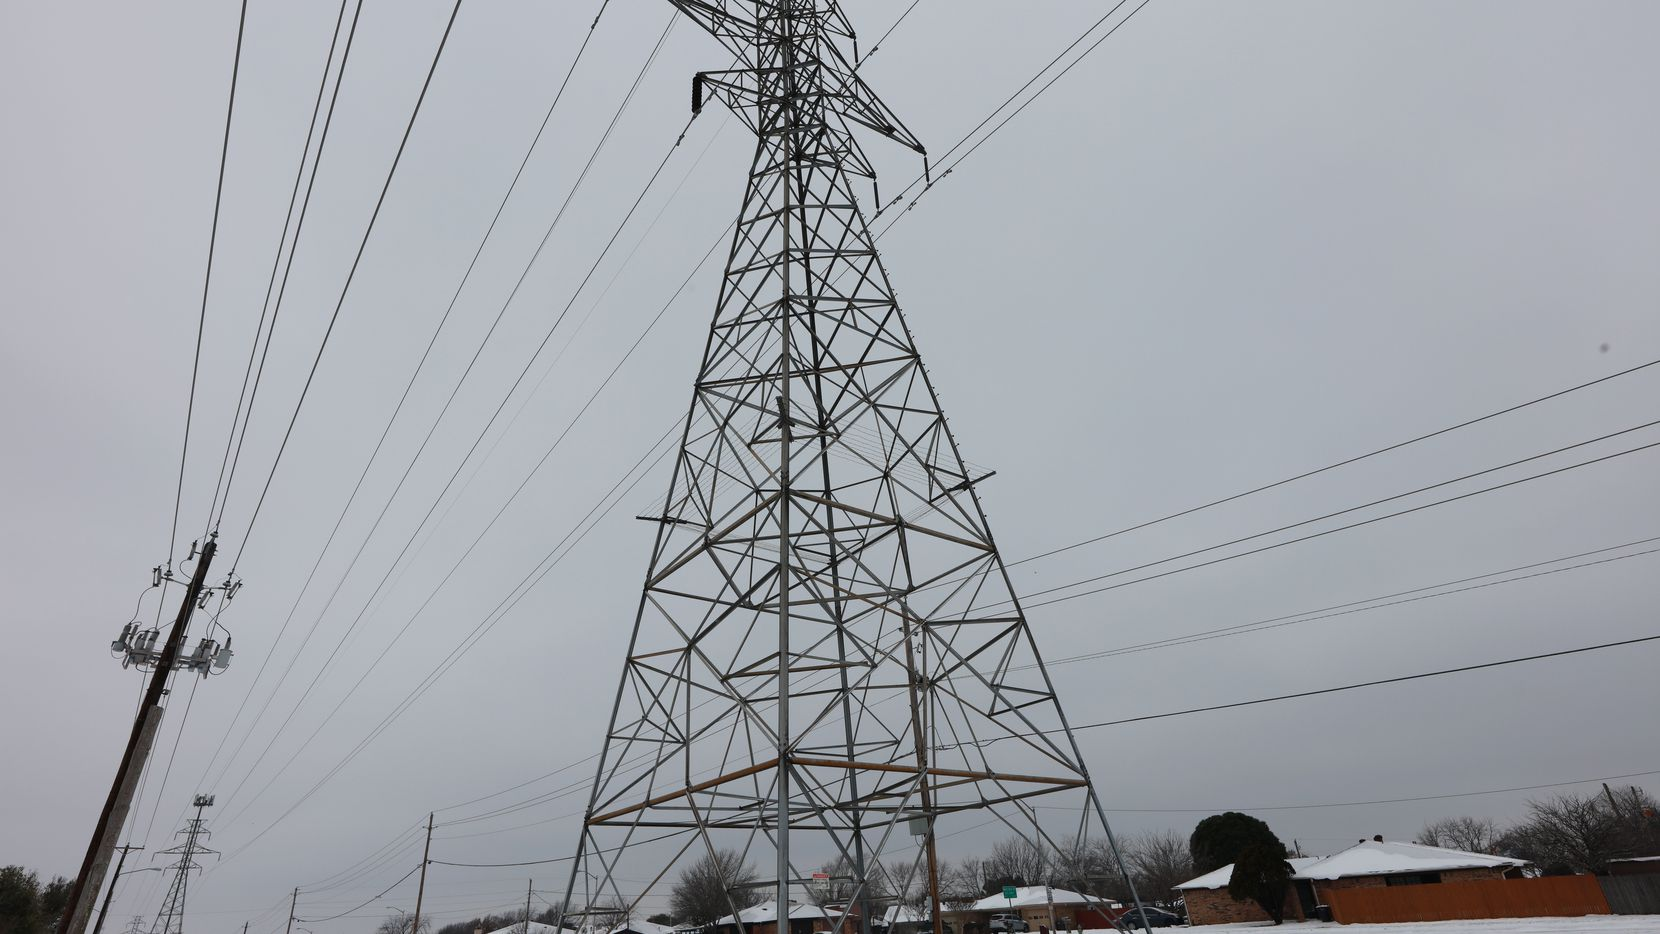 A power transmission tower in Fort Worth after a snow storm on Feb. 17, 2021.